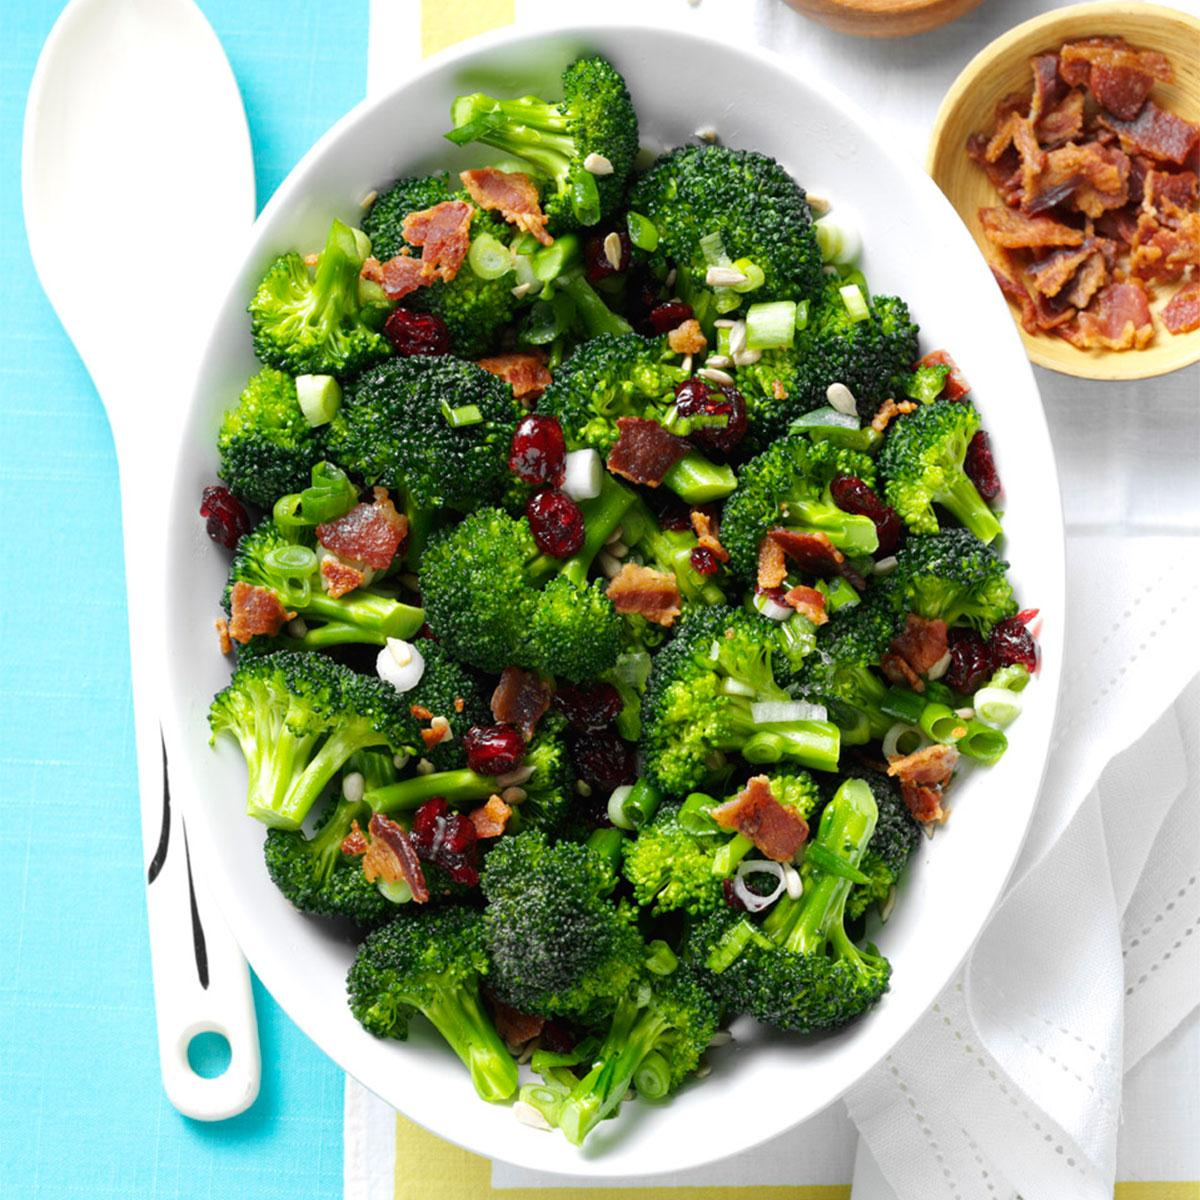 Crunchy Broccoli Salad Recipe How To Make It Taste Of Home